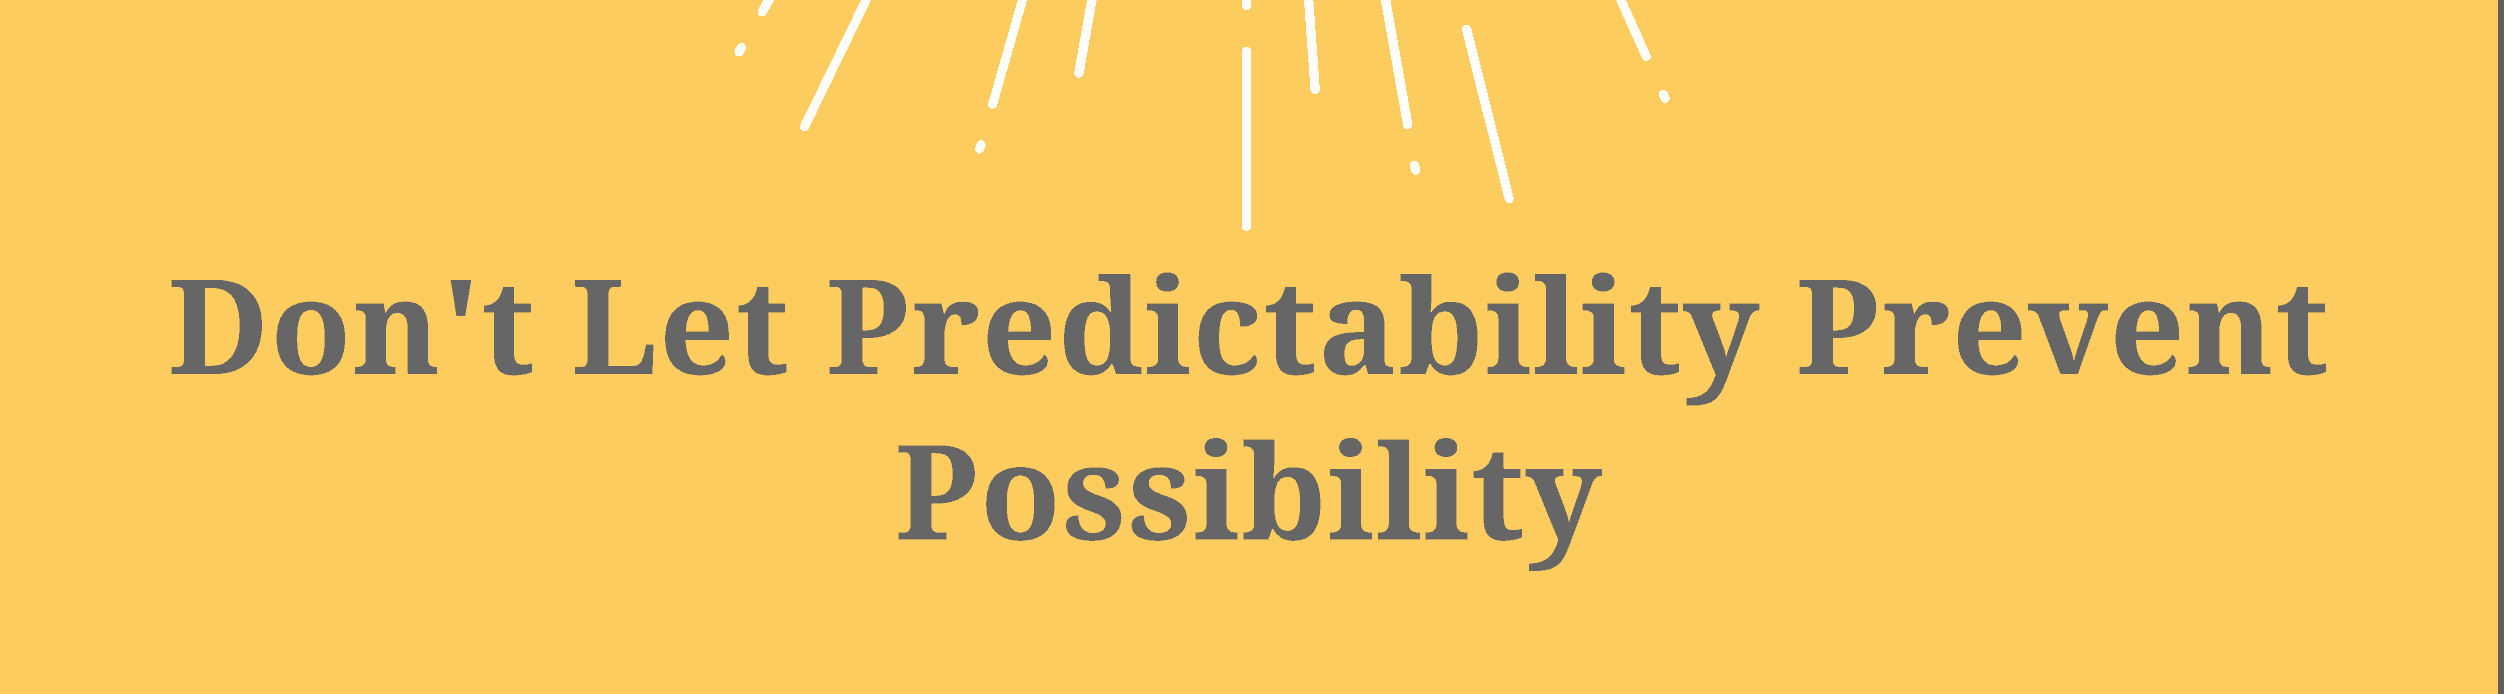 Image saying don't let predictability prevent possibility